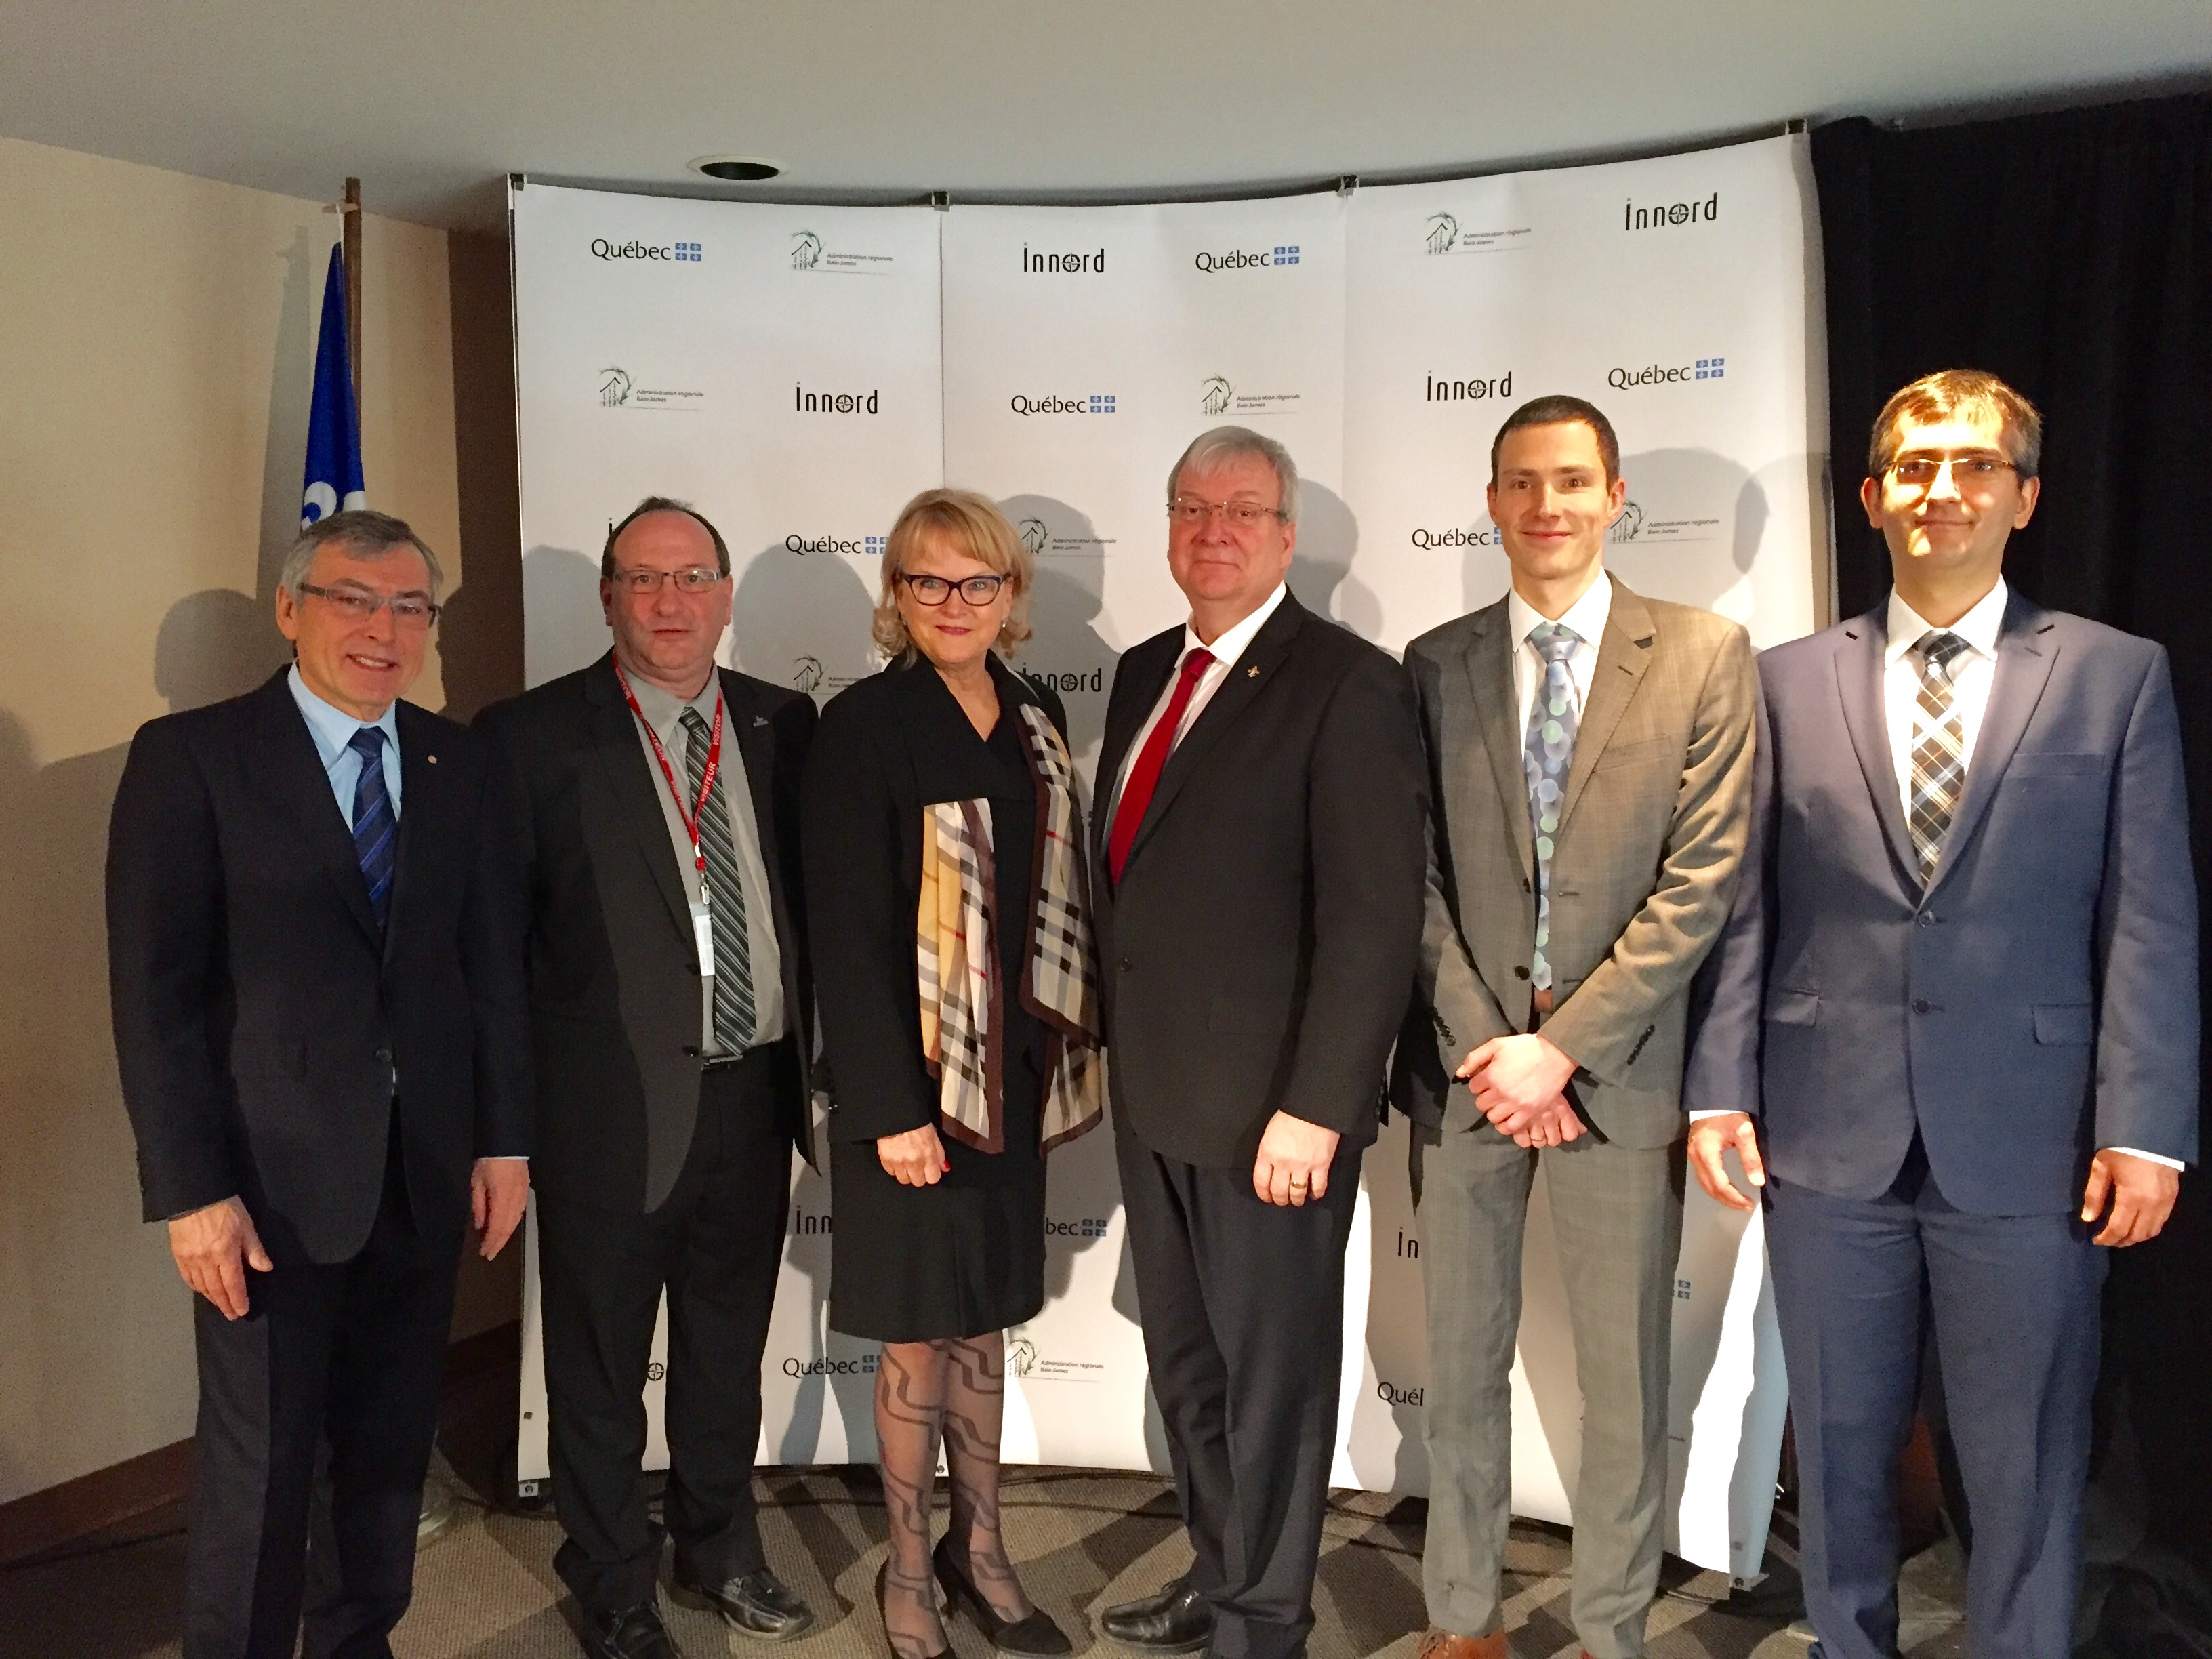 From left to right, M. Bédard , M. Poirier , Mme Ménard , M. Blanchette , M. Mugerman , le Dr Hajiani .